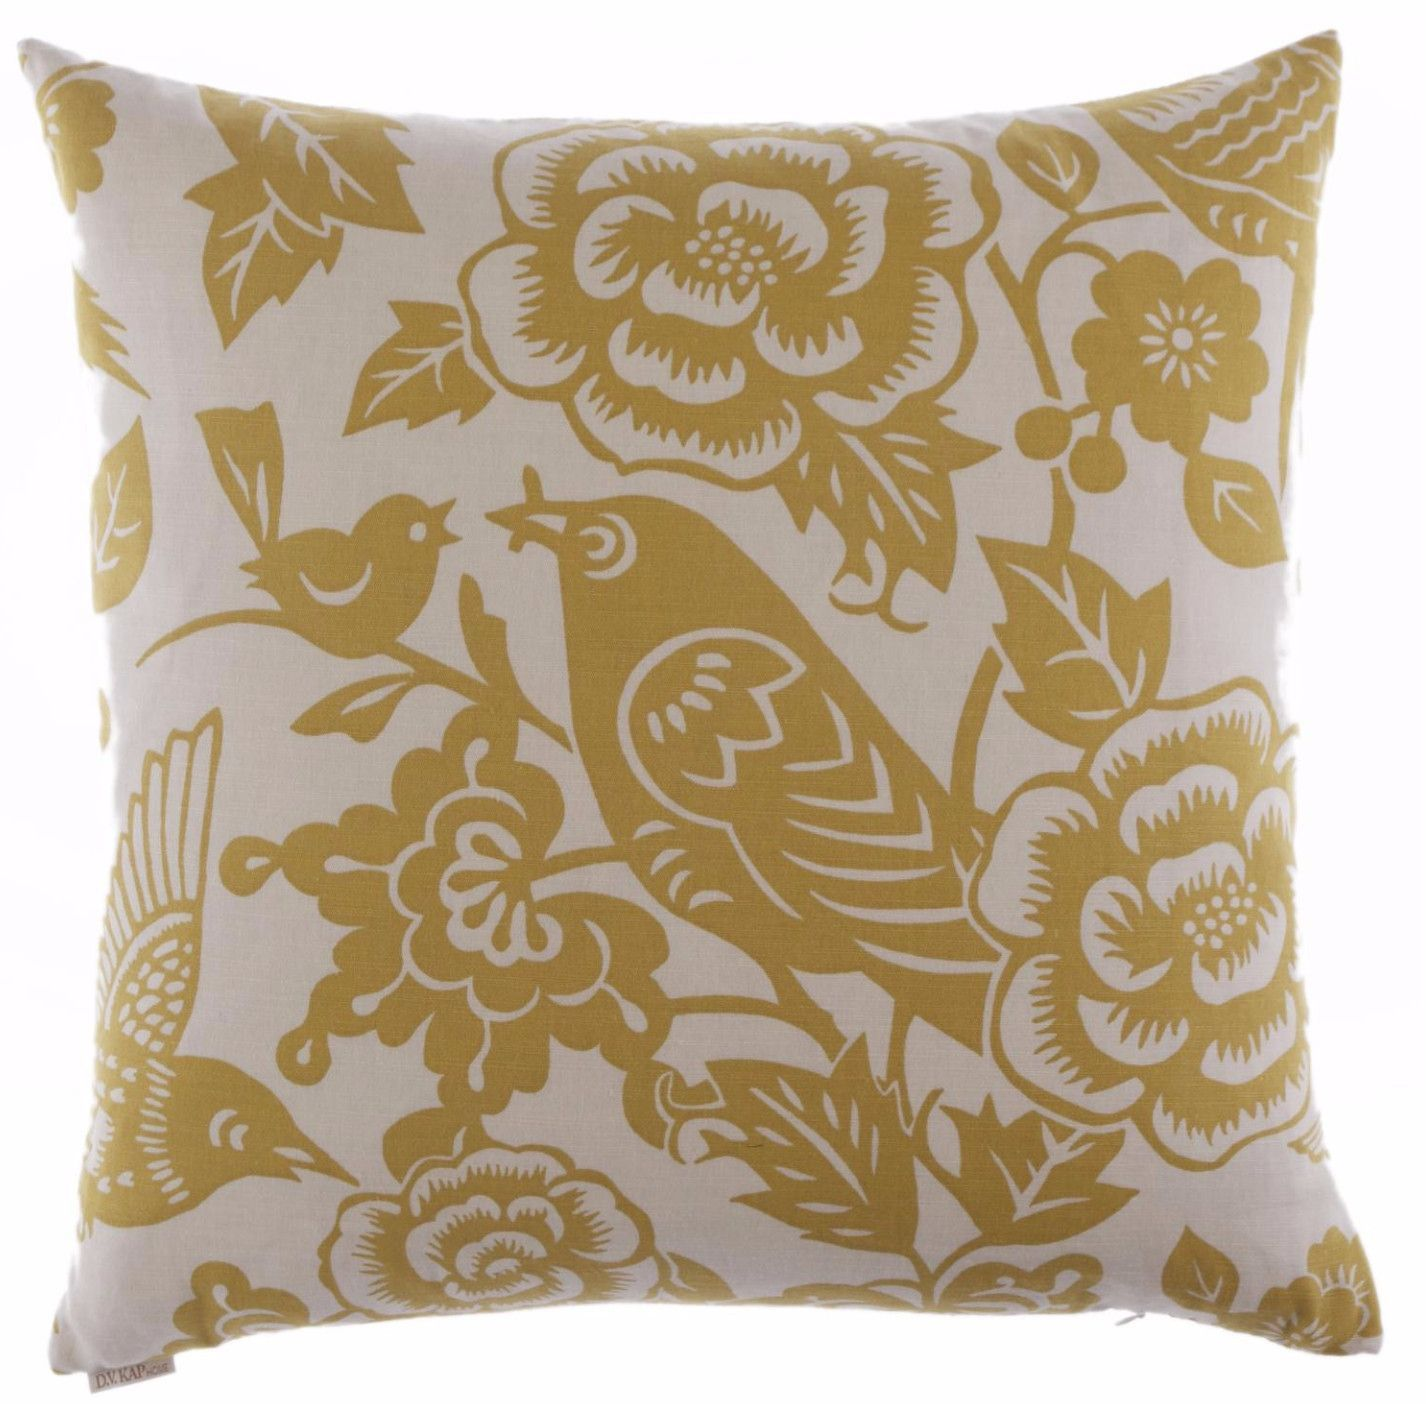 decorative of accent graphics pillows yellow nice designs pillow ideas throw adorable